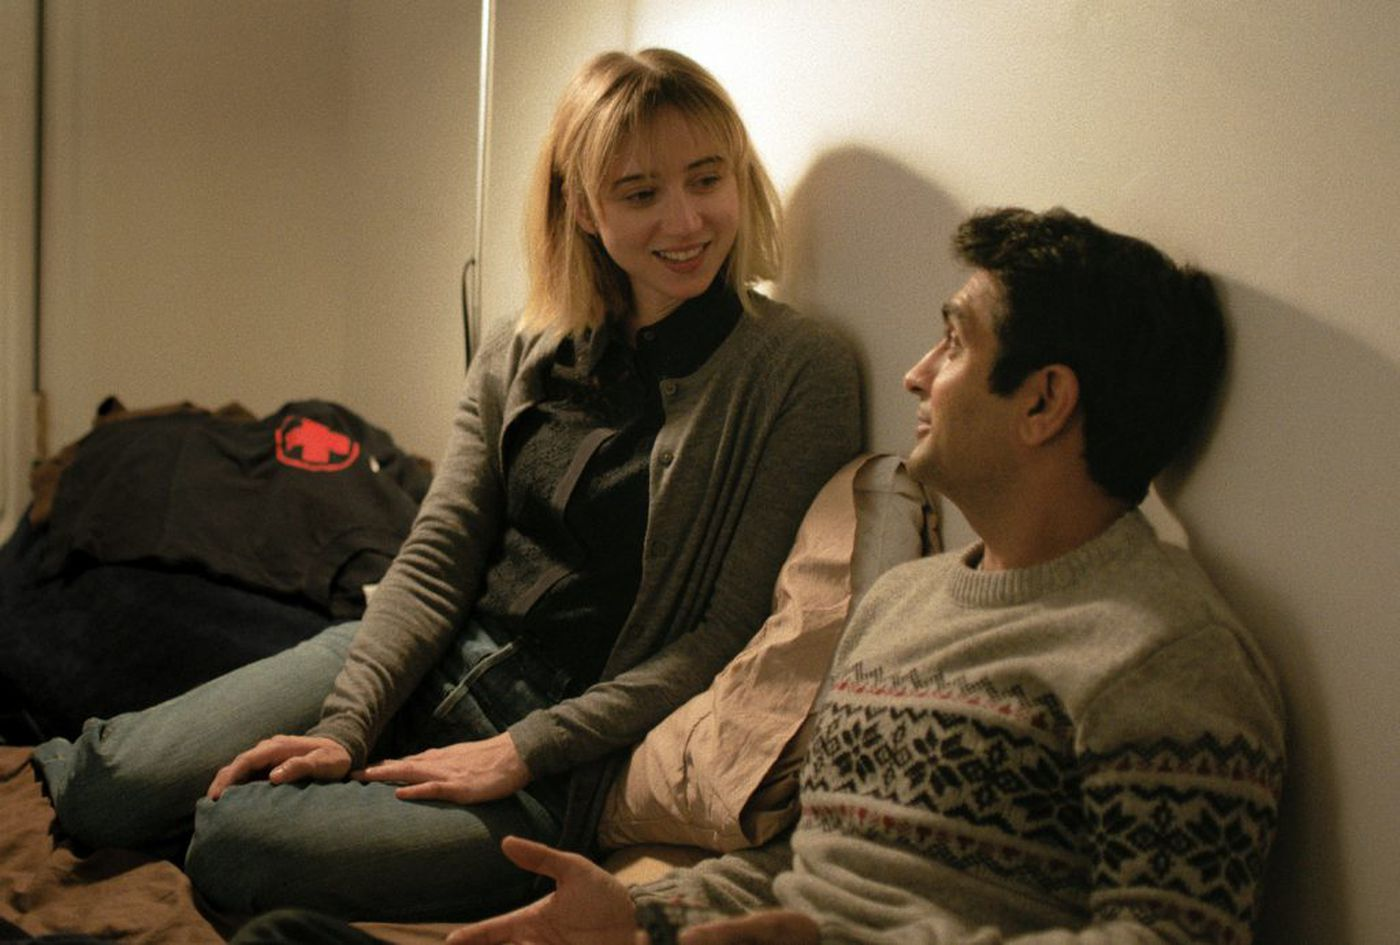 'The Big Sick': Finally, Hollywood gets a comedy right